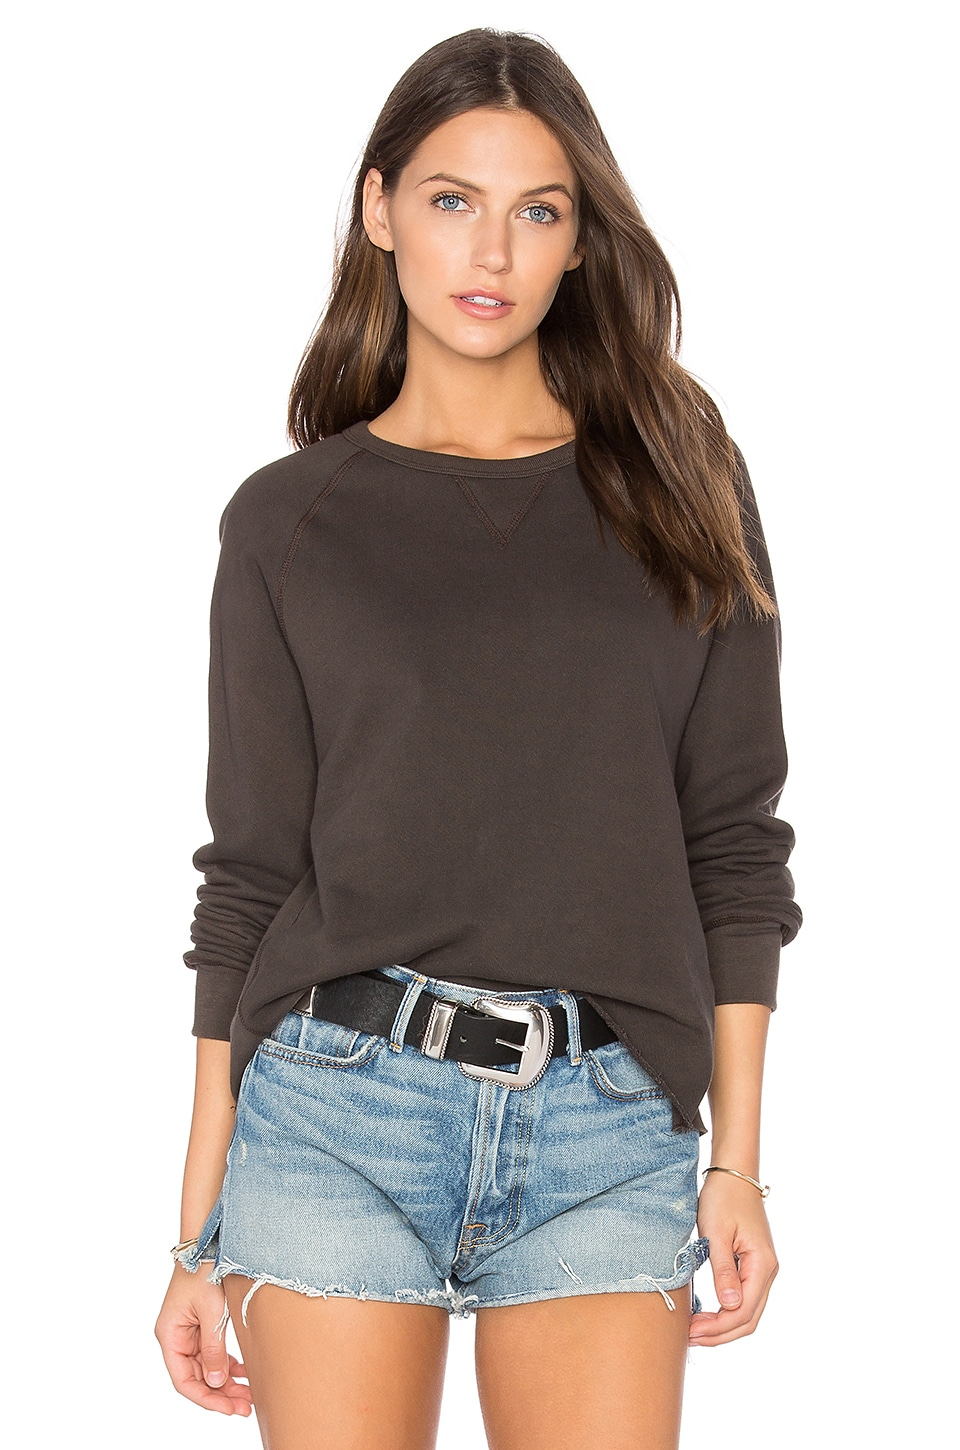 JOAH BROWN Grunge Cut Off Sweatshirt in Charcoal